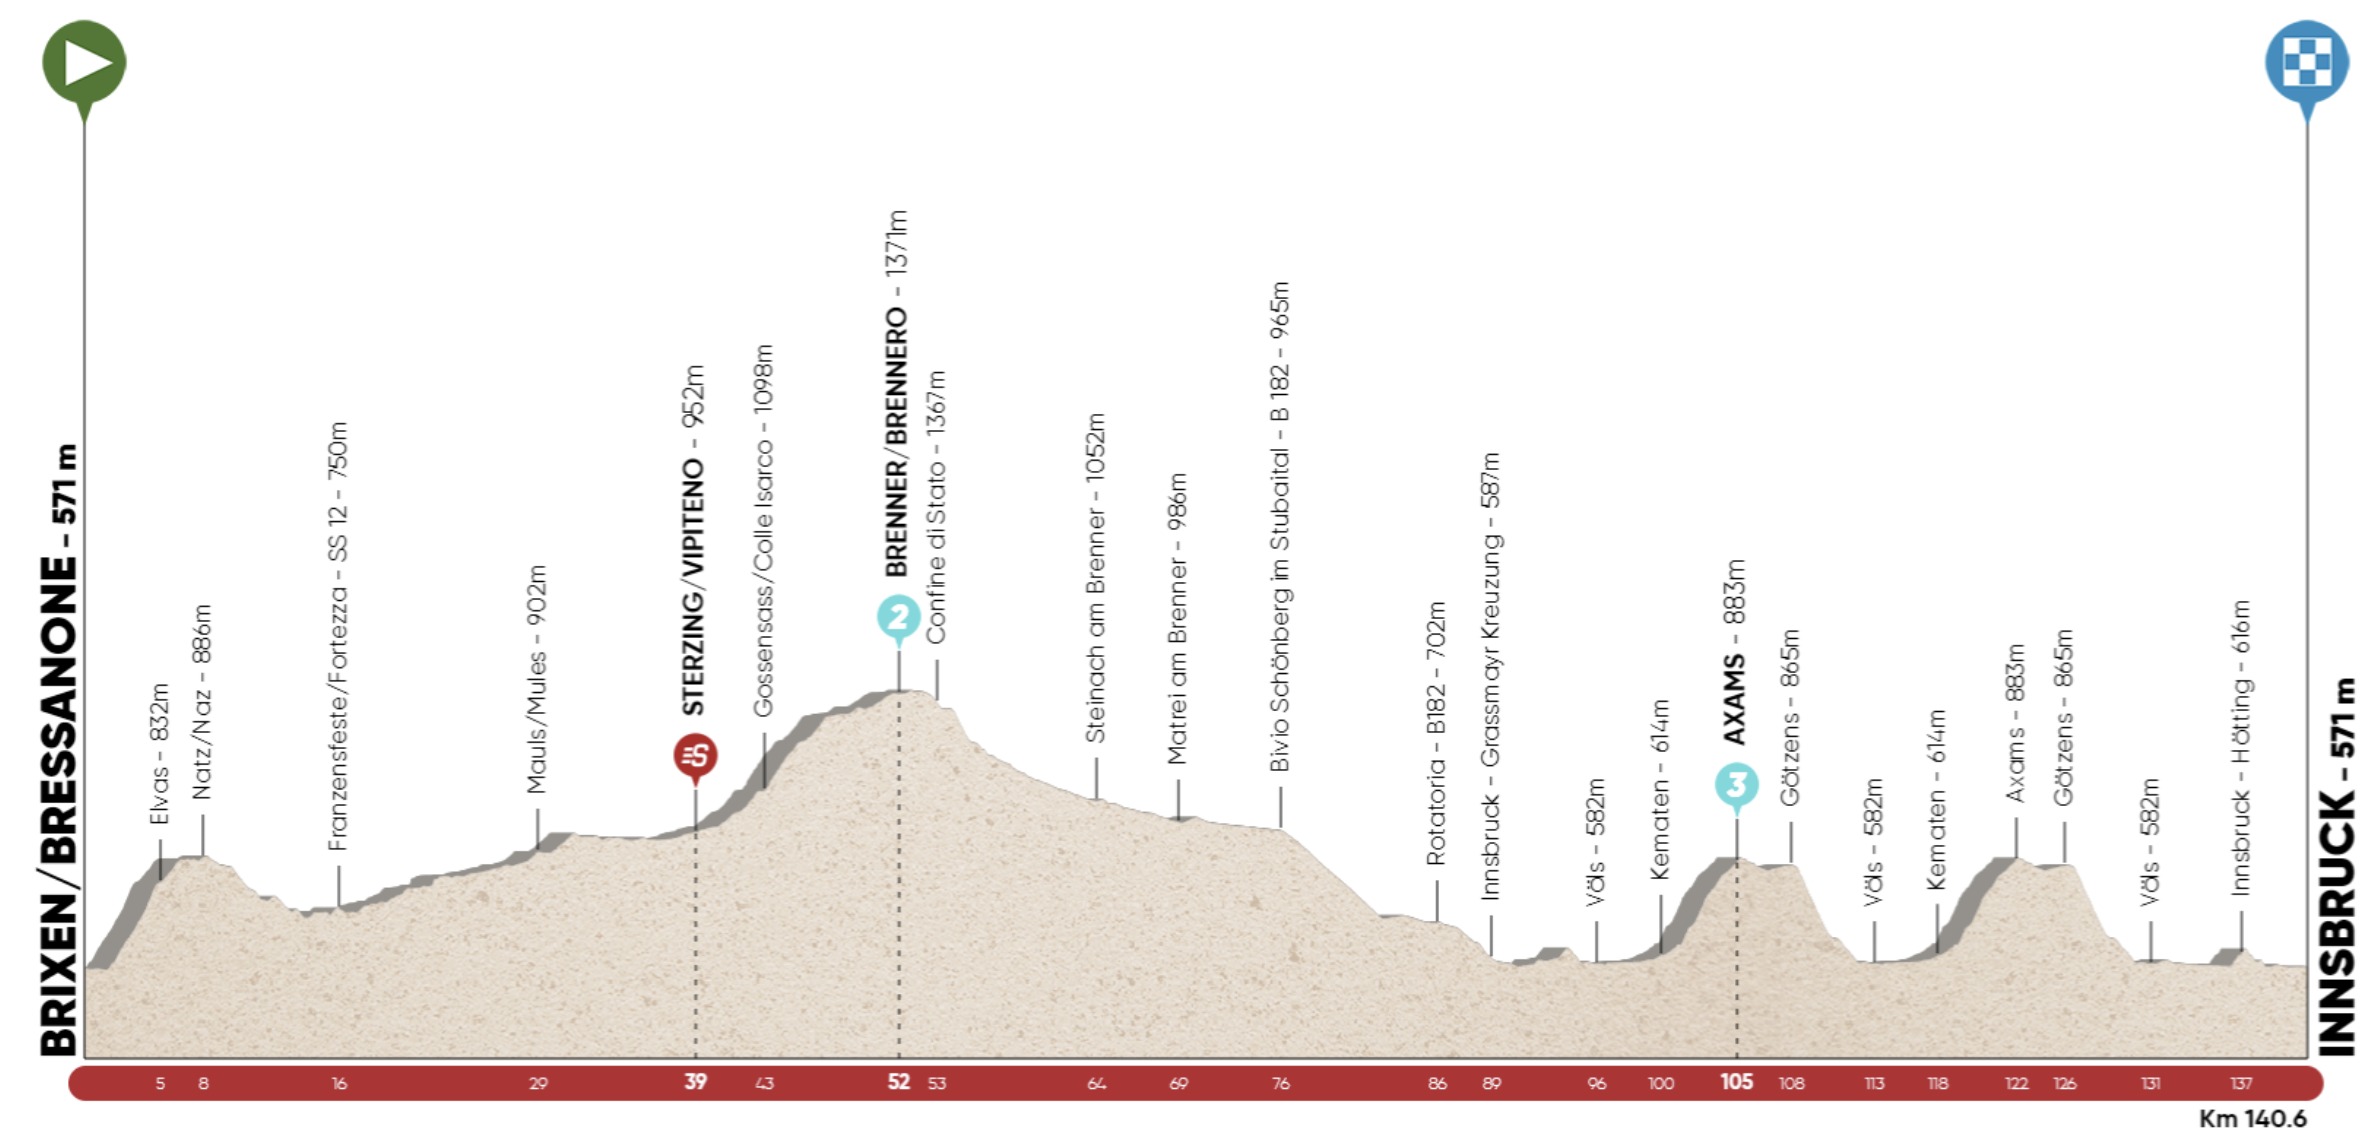 Tour of the Alps stage 1 profile